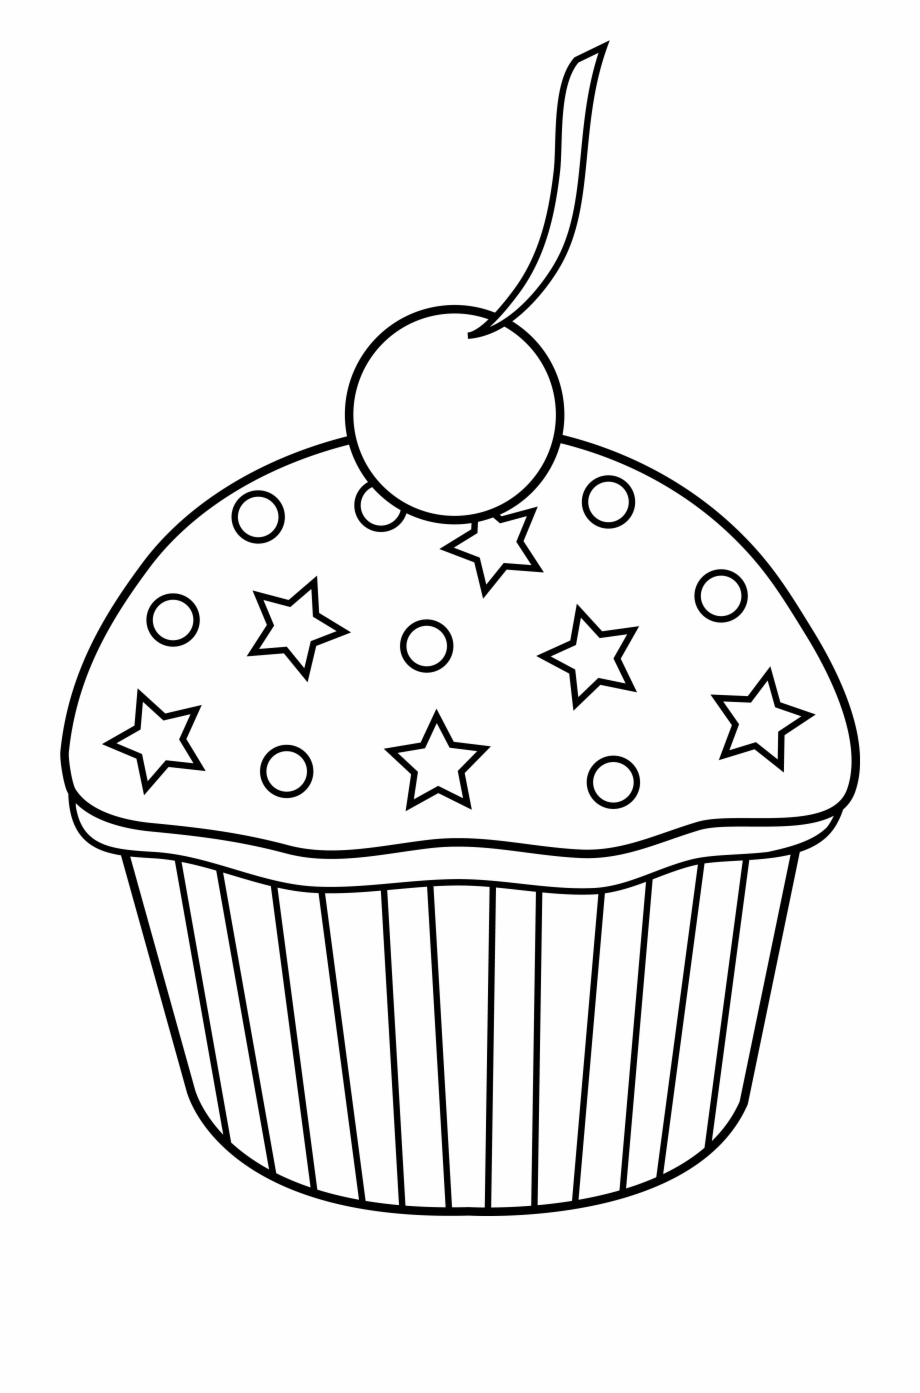 Muffin Clipart Colored Cupcake.